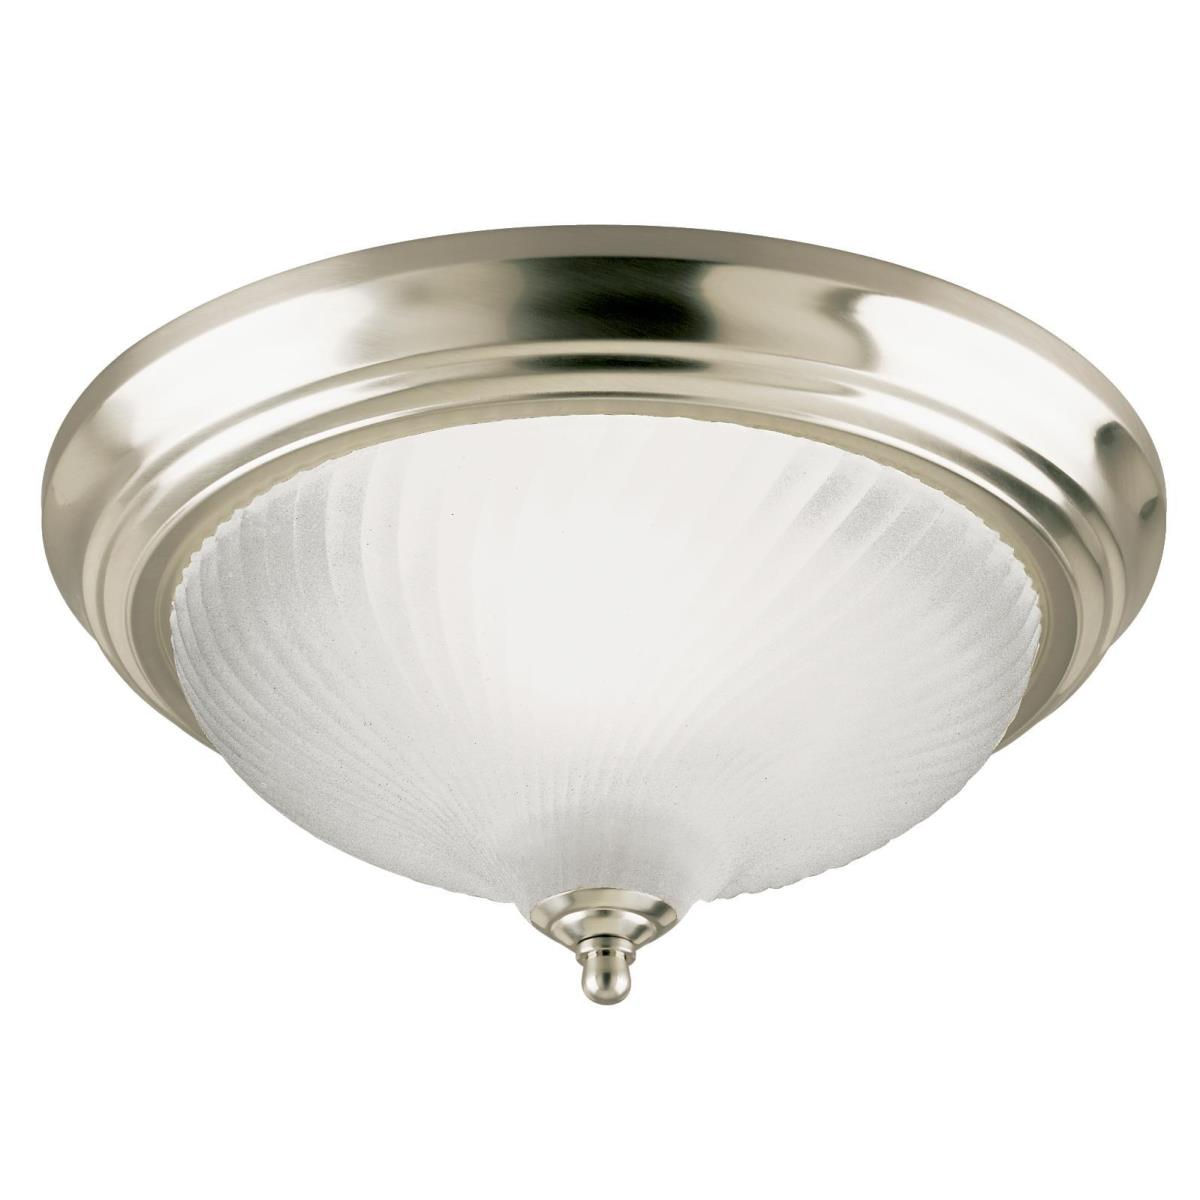 1 Light Flush Brushed Nickel Finish with Frosted Swirl Glass